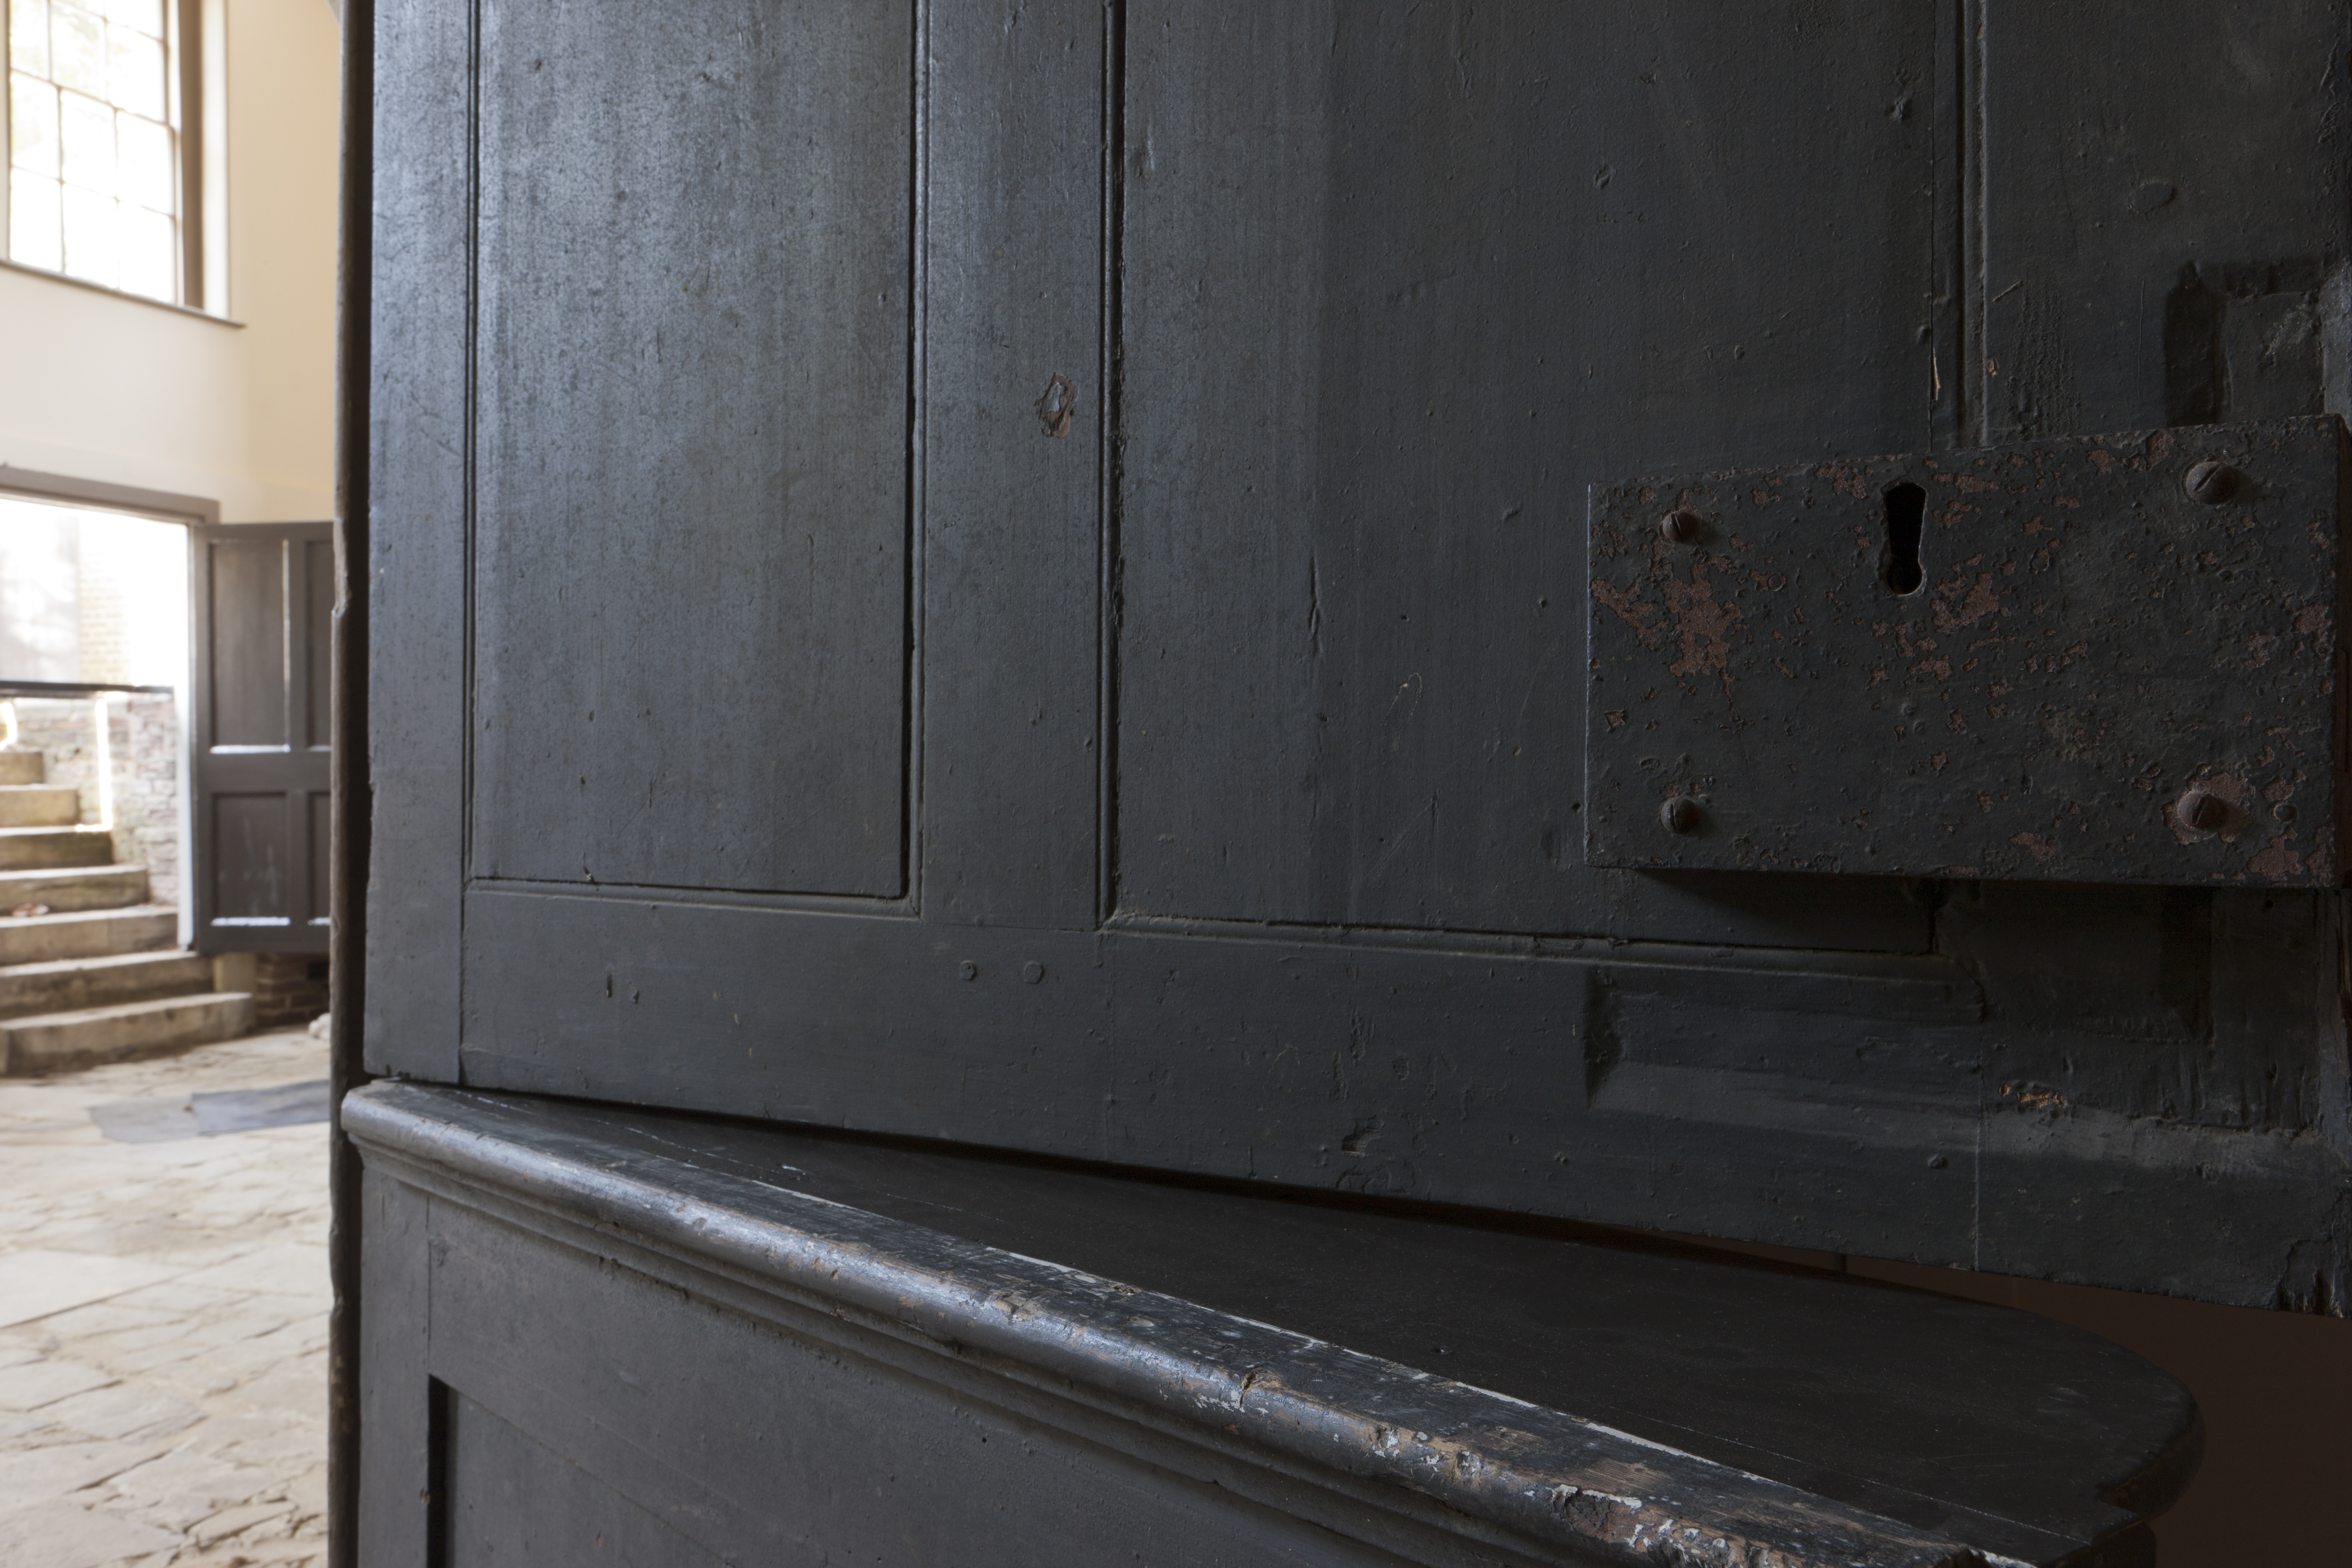 A photo of a black kitchen door showing a ledge